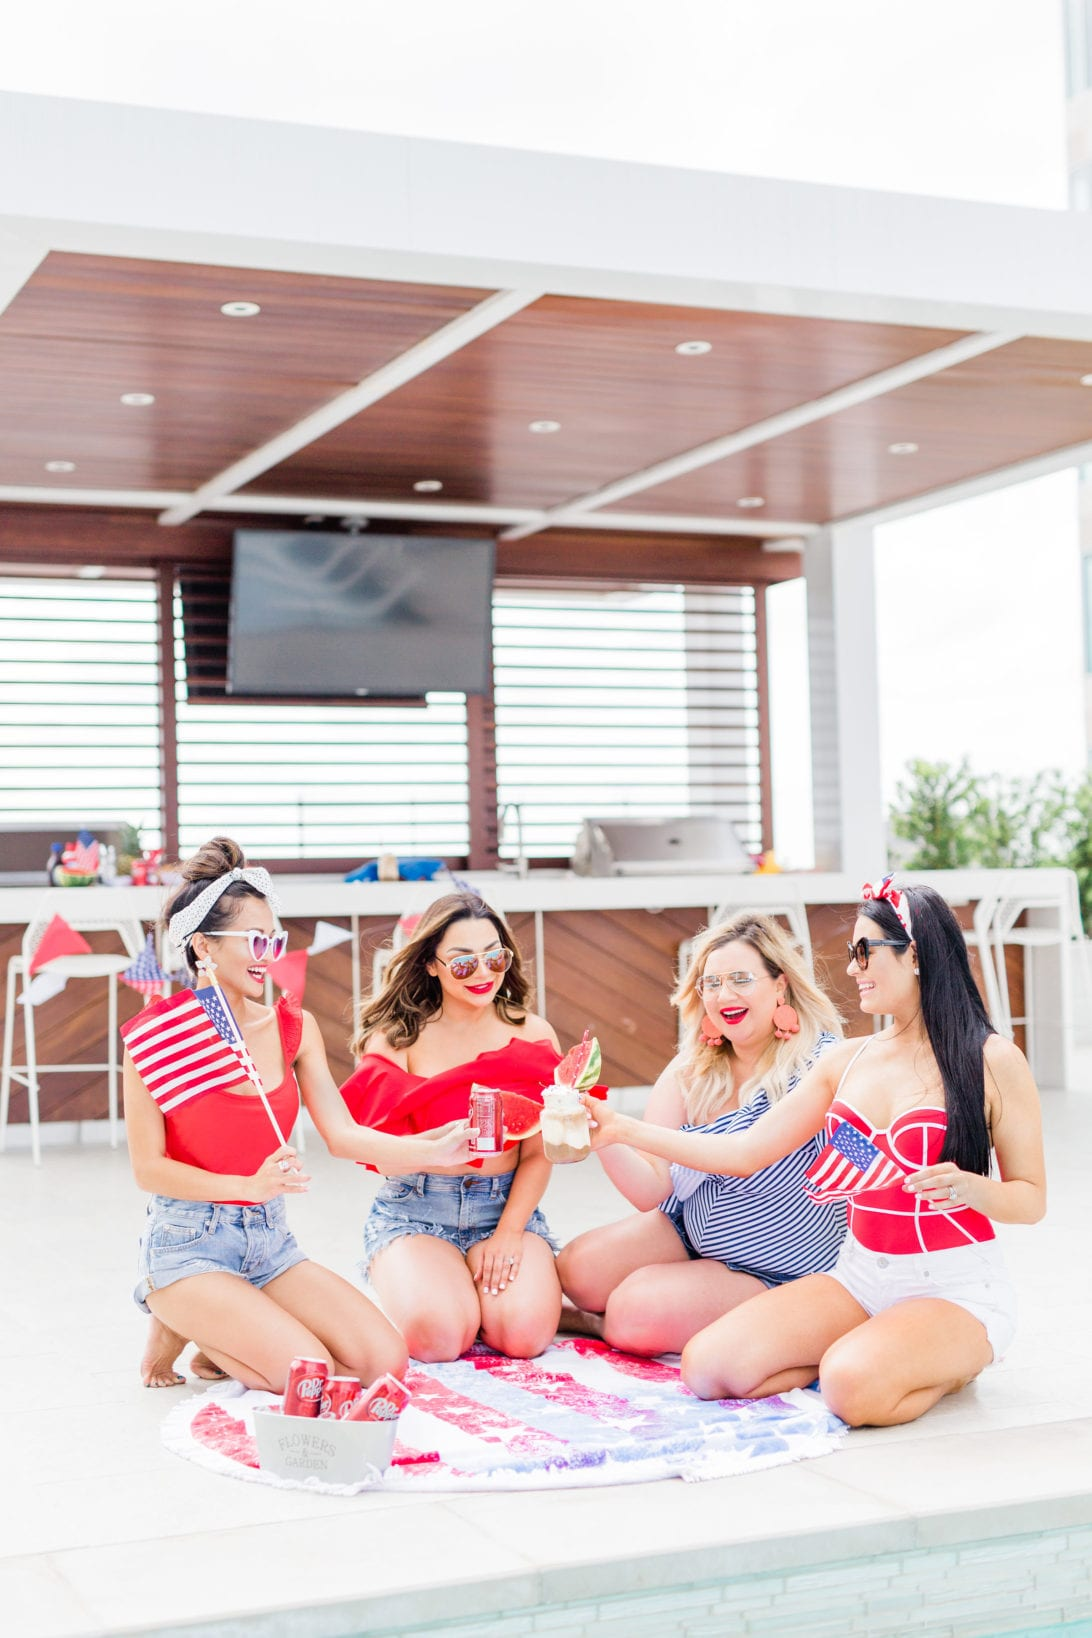 #PickYourPepper, #Walmart #ad, 4th of July, Memorial Day, Pool Party, red, white and blue party, summer party, dr. pepper, red swimsuit, heart shaped sunglasses, pool party, watermelon, DIY 4th of July decoration, Dr. Pepper Float, float bar, float station, Dr. Pepper ice-cream